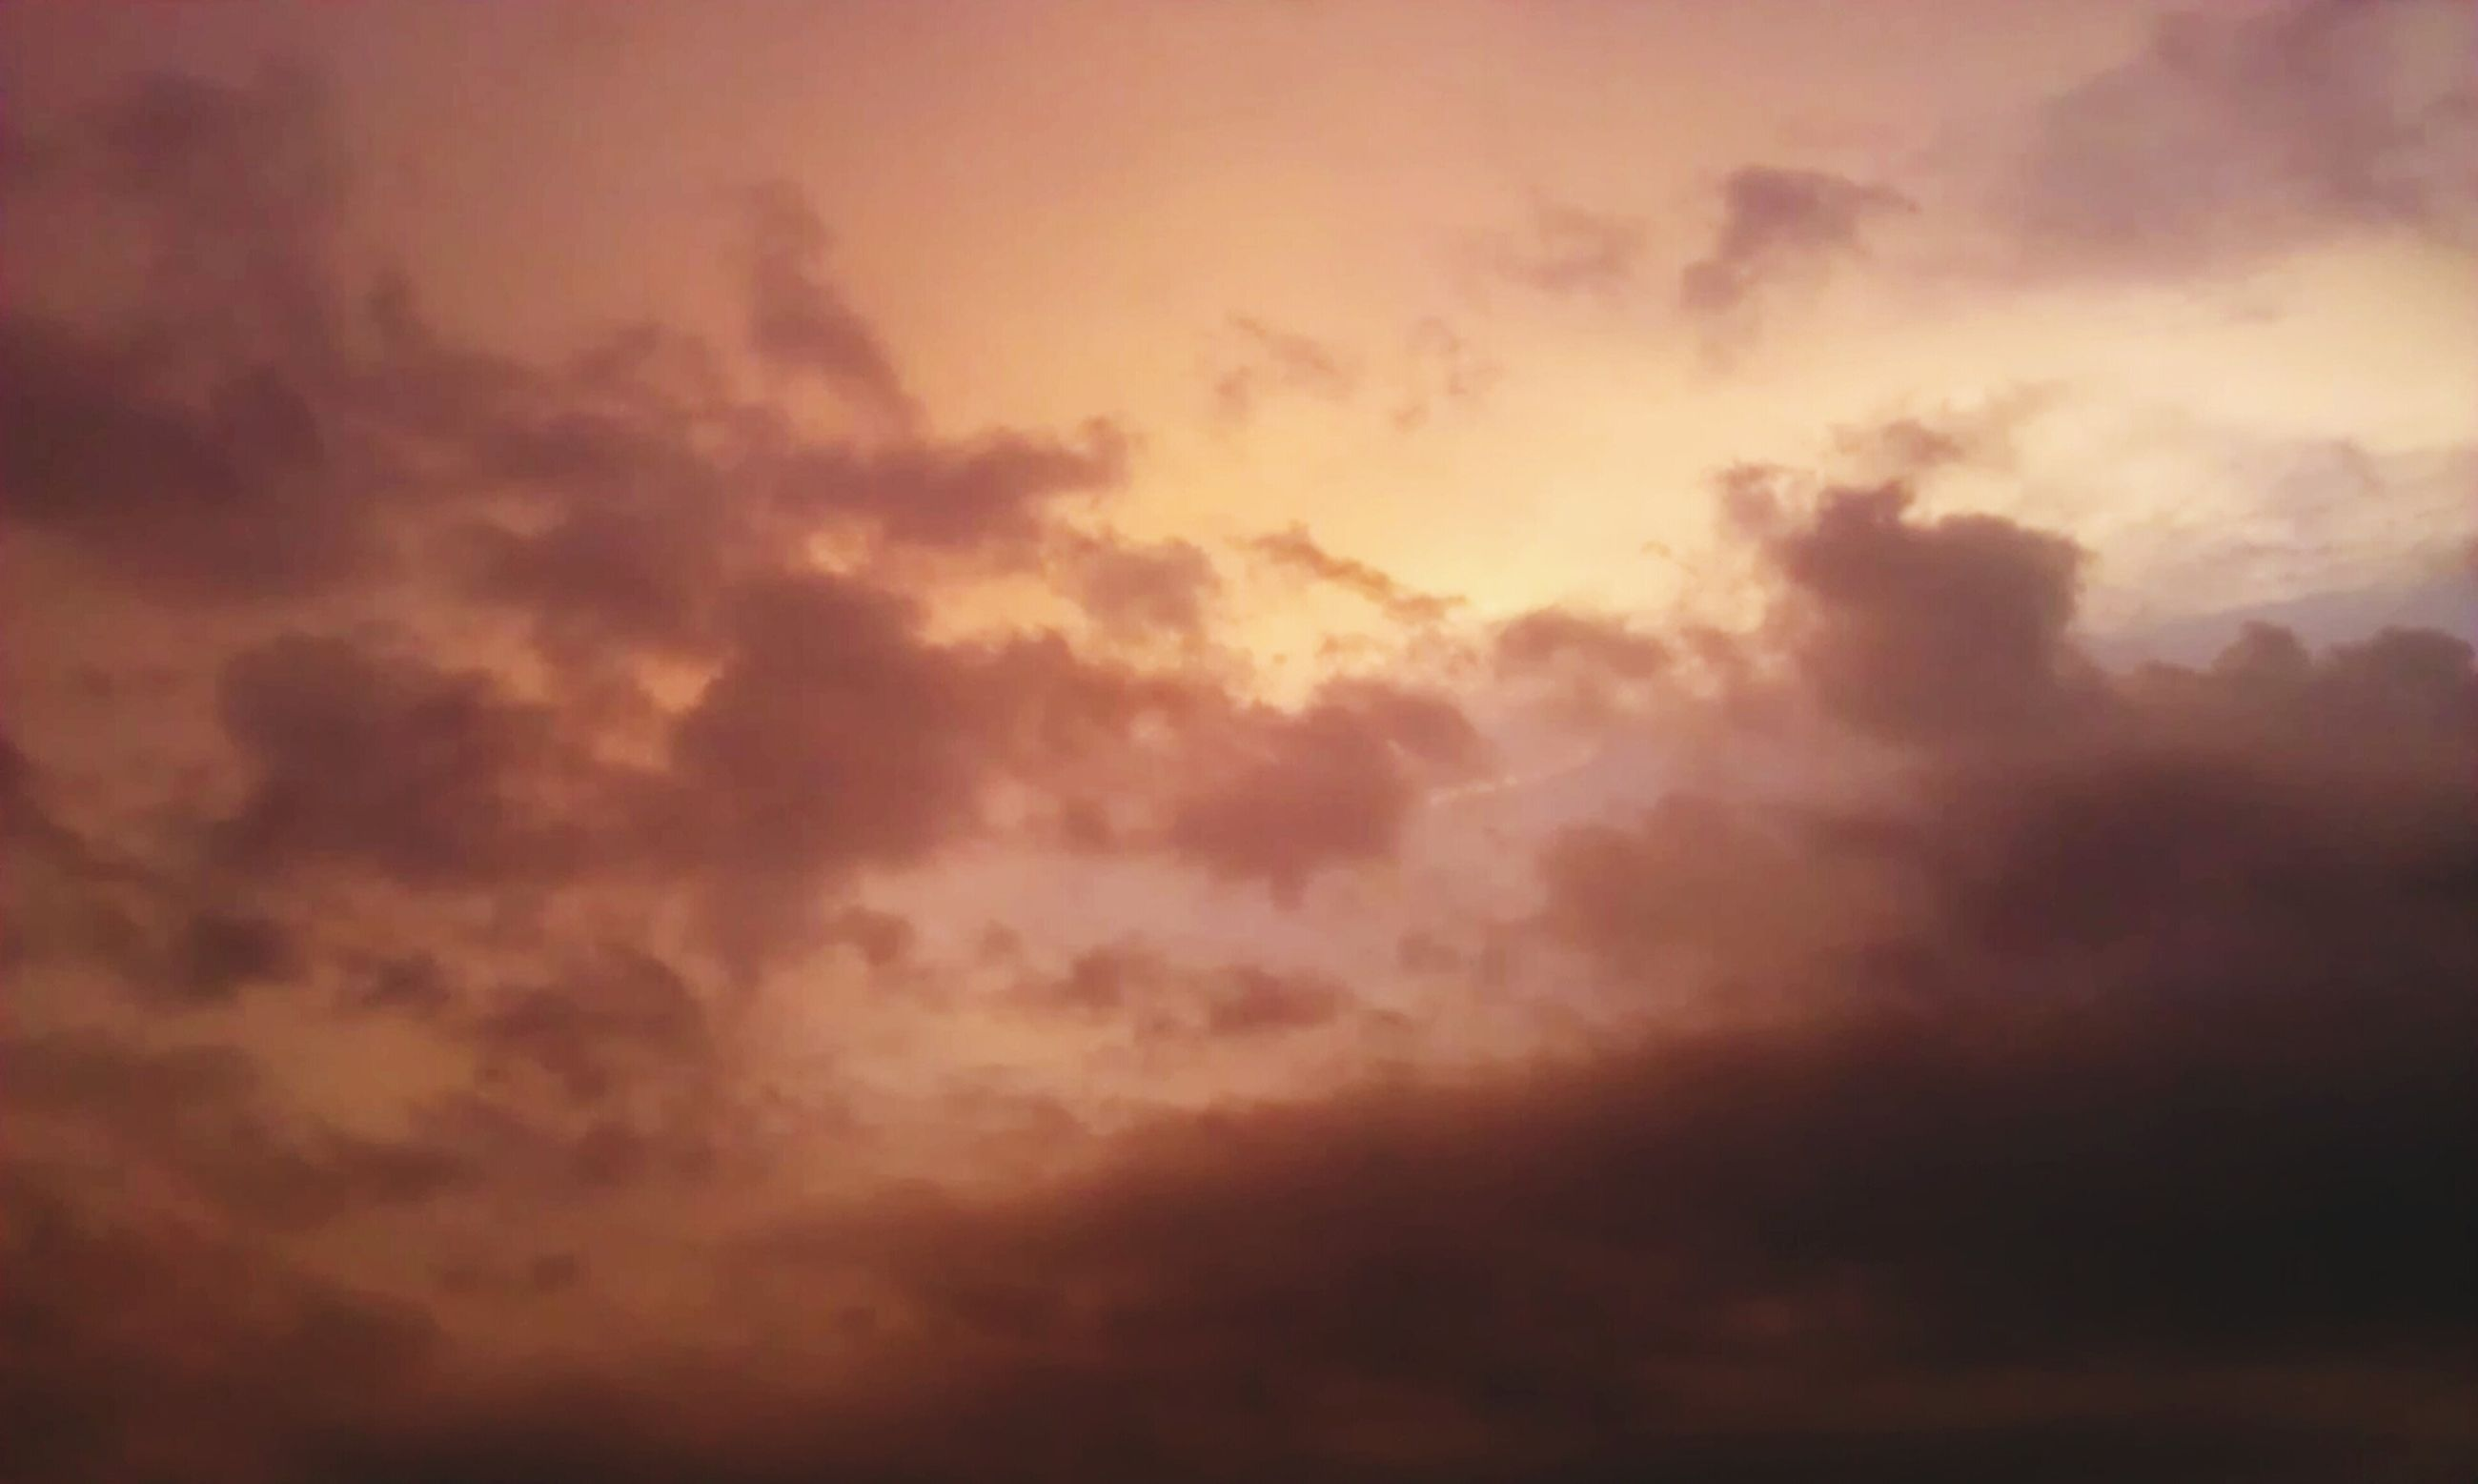 sky, cloud - sky, sky only, beauty in nature, low angle view, scenics, cloudy, cloudscape, tranquility, tranquil scene, nature, weather, backgrounds, sunset, full frame, overcast, idyllic, dramatic sky, cloud, majestic